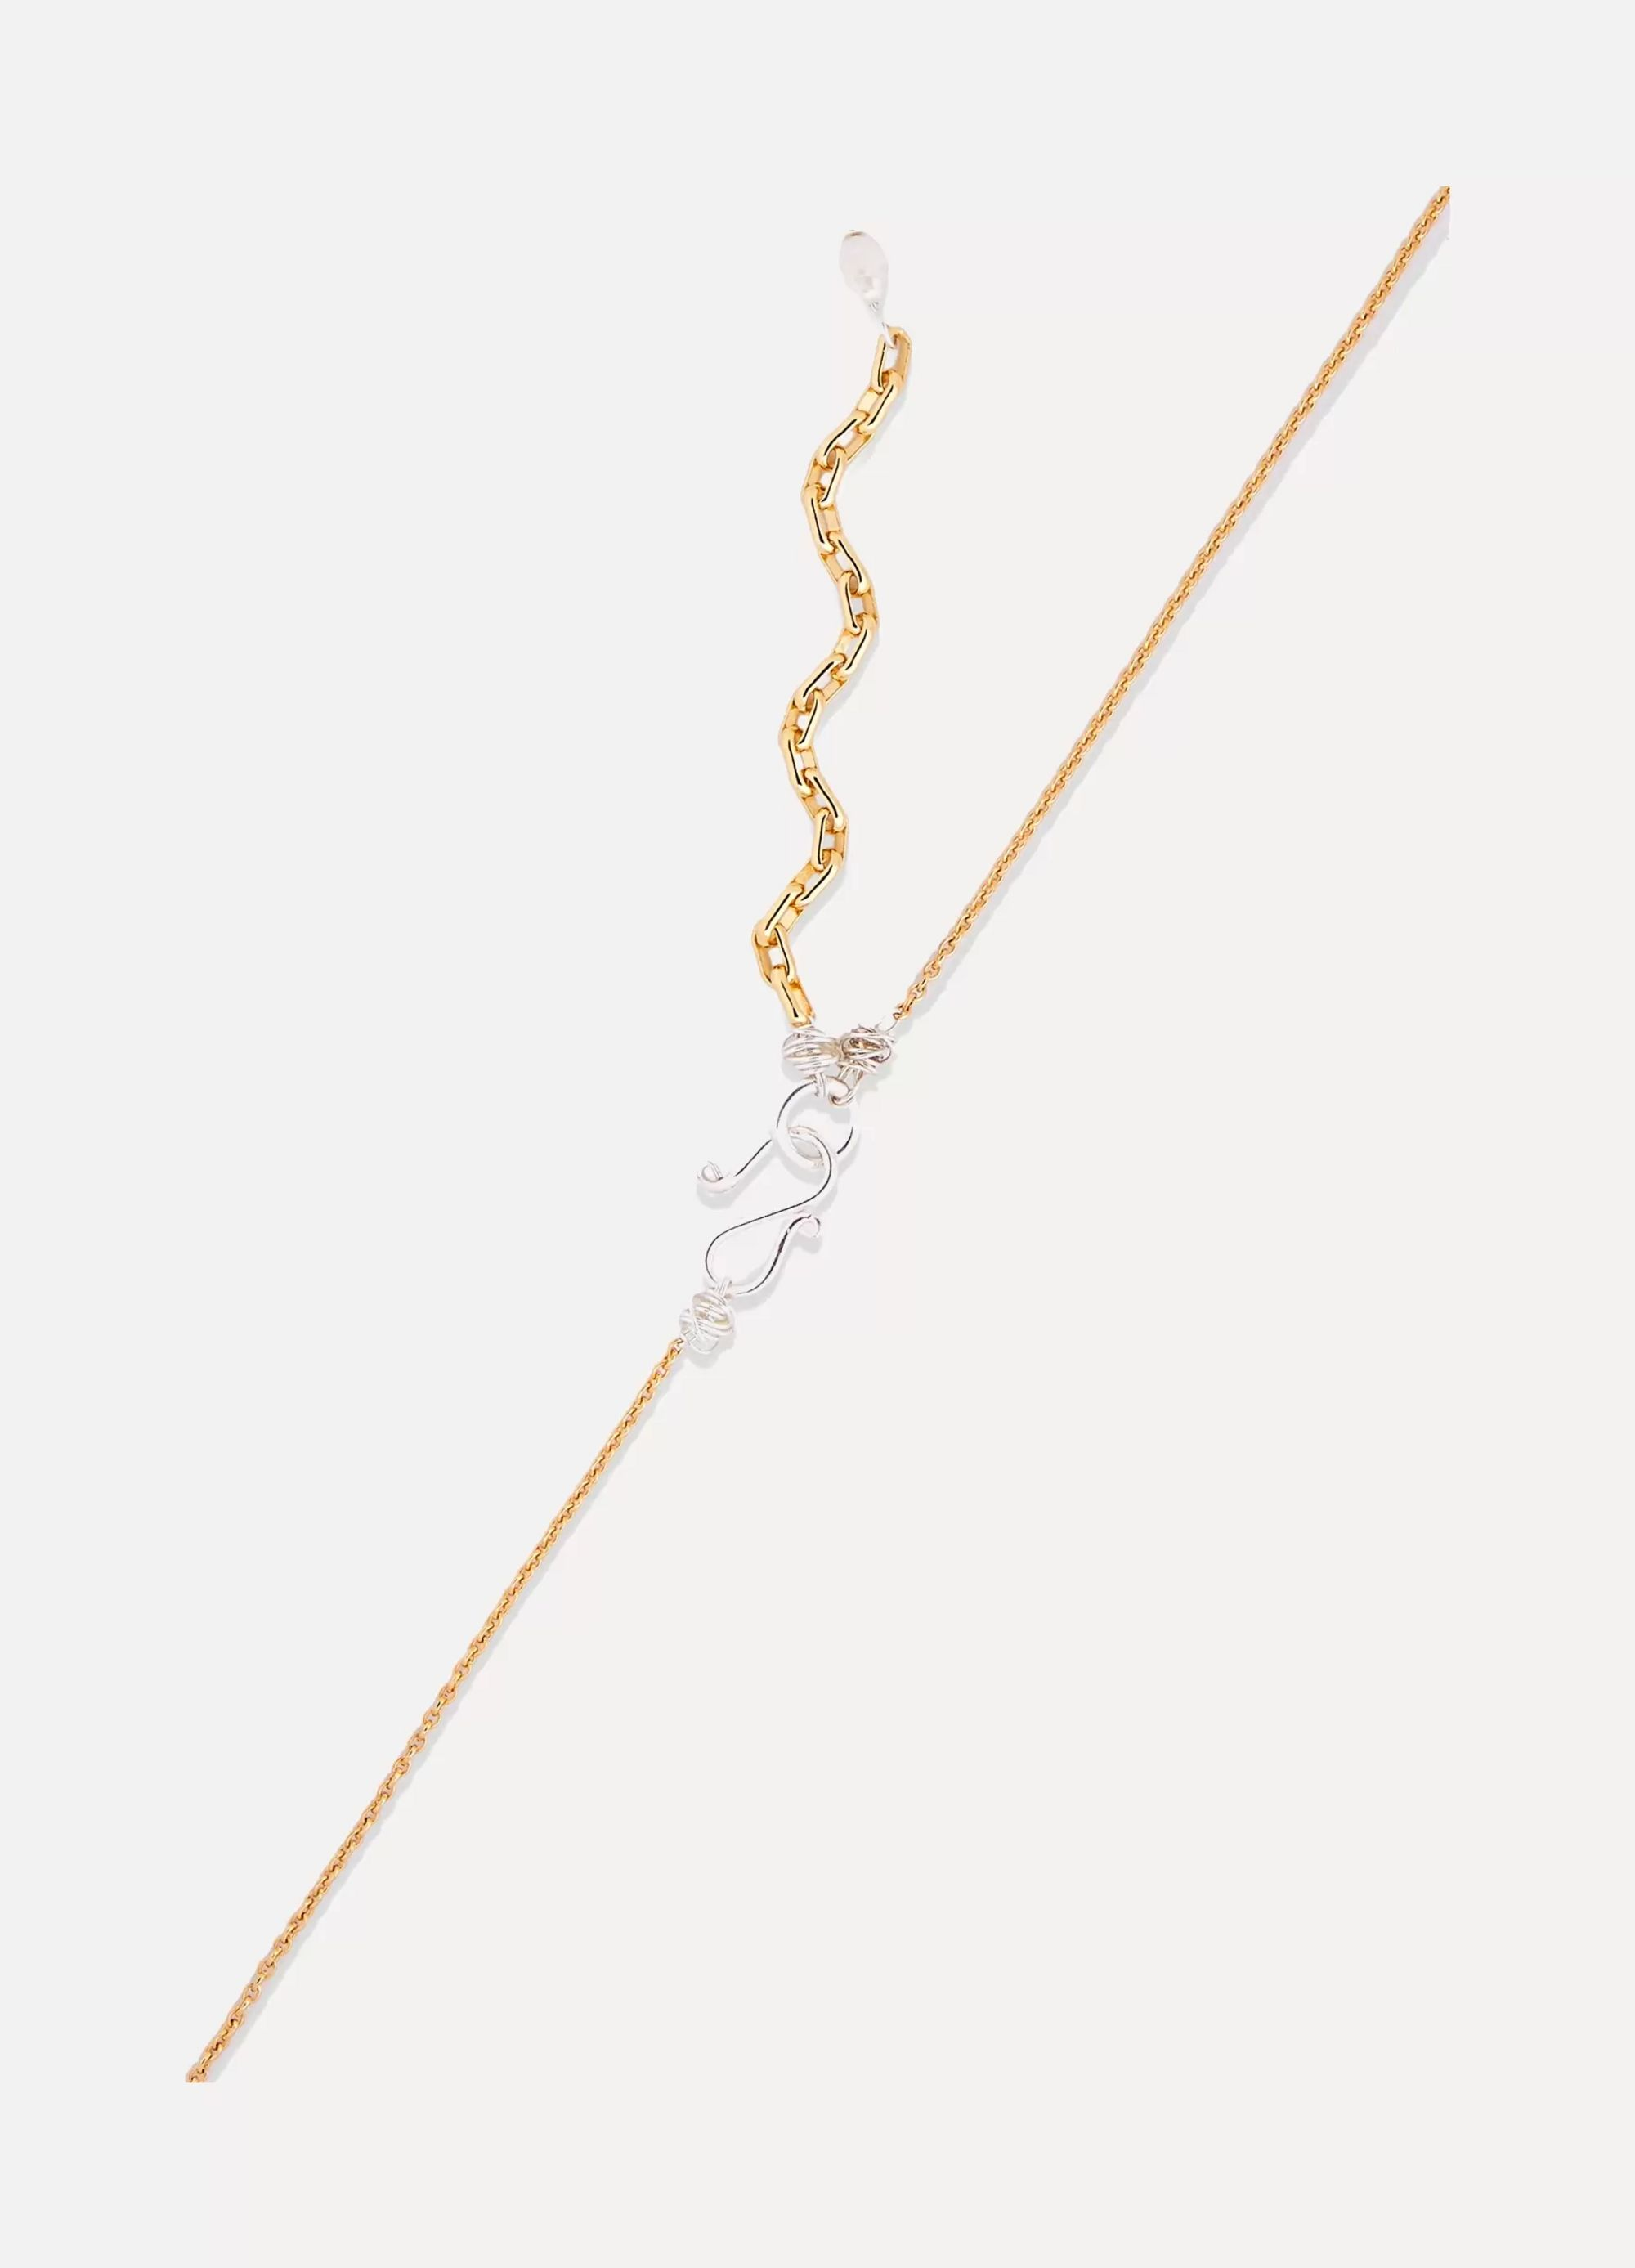 WALD Berlin Just A Friend gold-plated, Swarovski crystal and pearl necklace